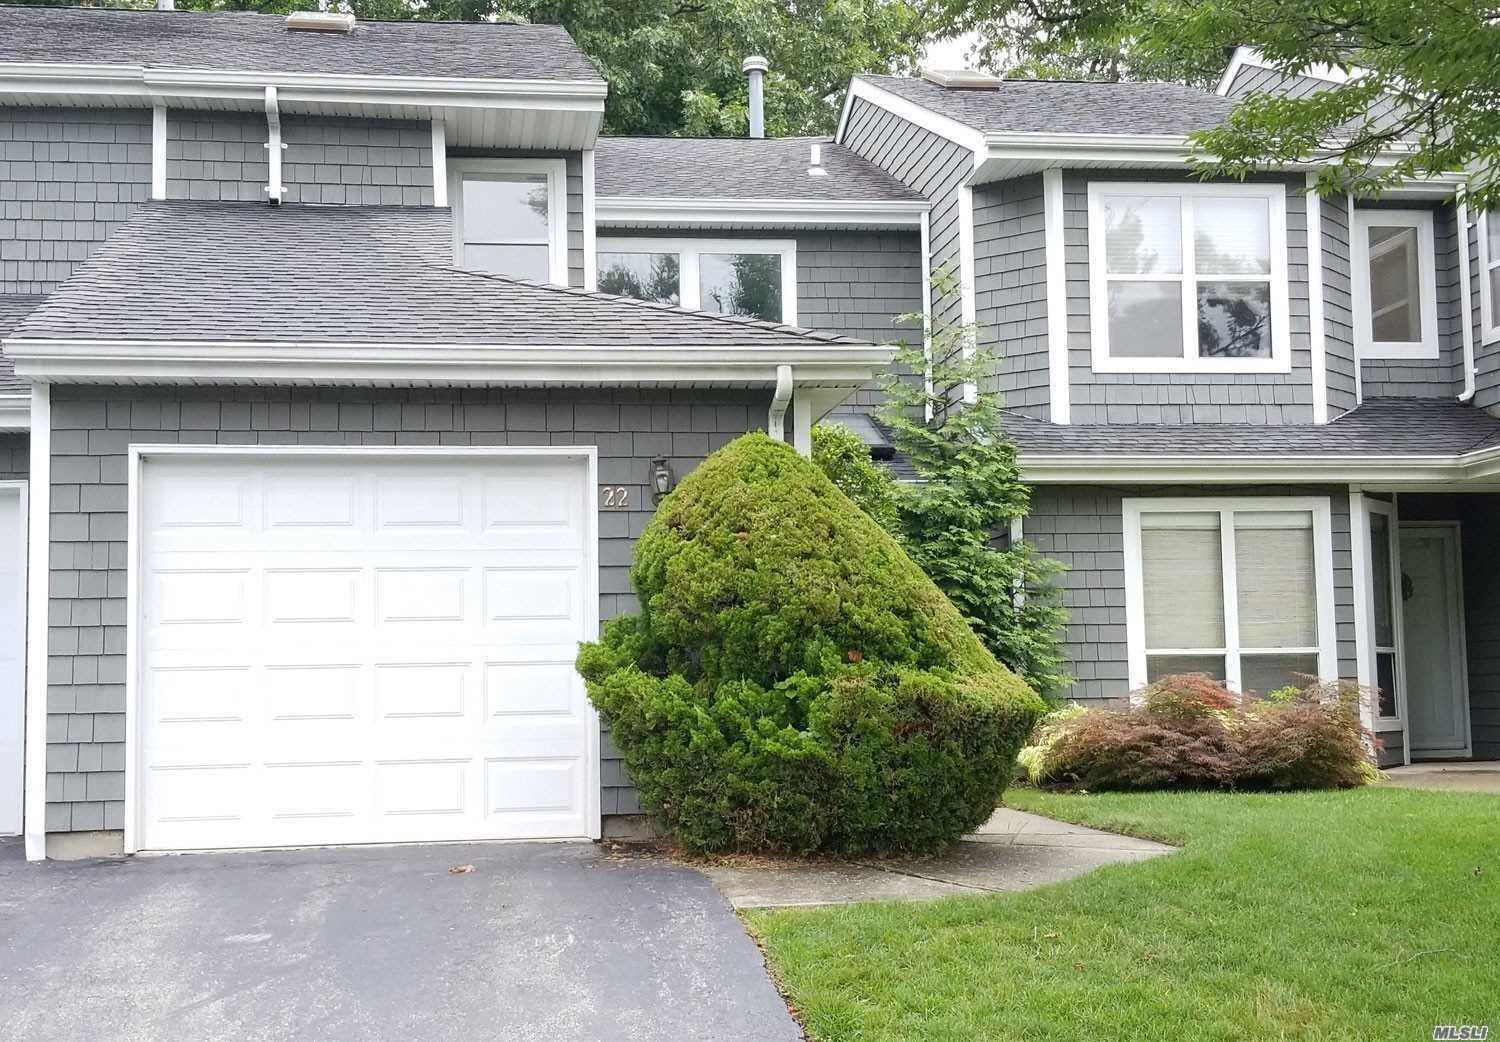 Gorgeous Renovated Condo In A Lovely Gated Community In Commack. Modern Kitchen With Ceramic Tile, Granite Counters And Stainless Steel Appliances. Nice And Spacious With Plenty Of Light. Master Suite Has Both A Stand Up And A Tub. Amenities Such As A Pool, Gym And Tennis Court For Your Recreational Pleasure.